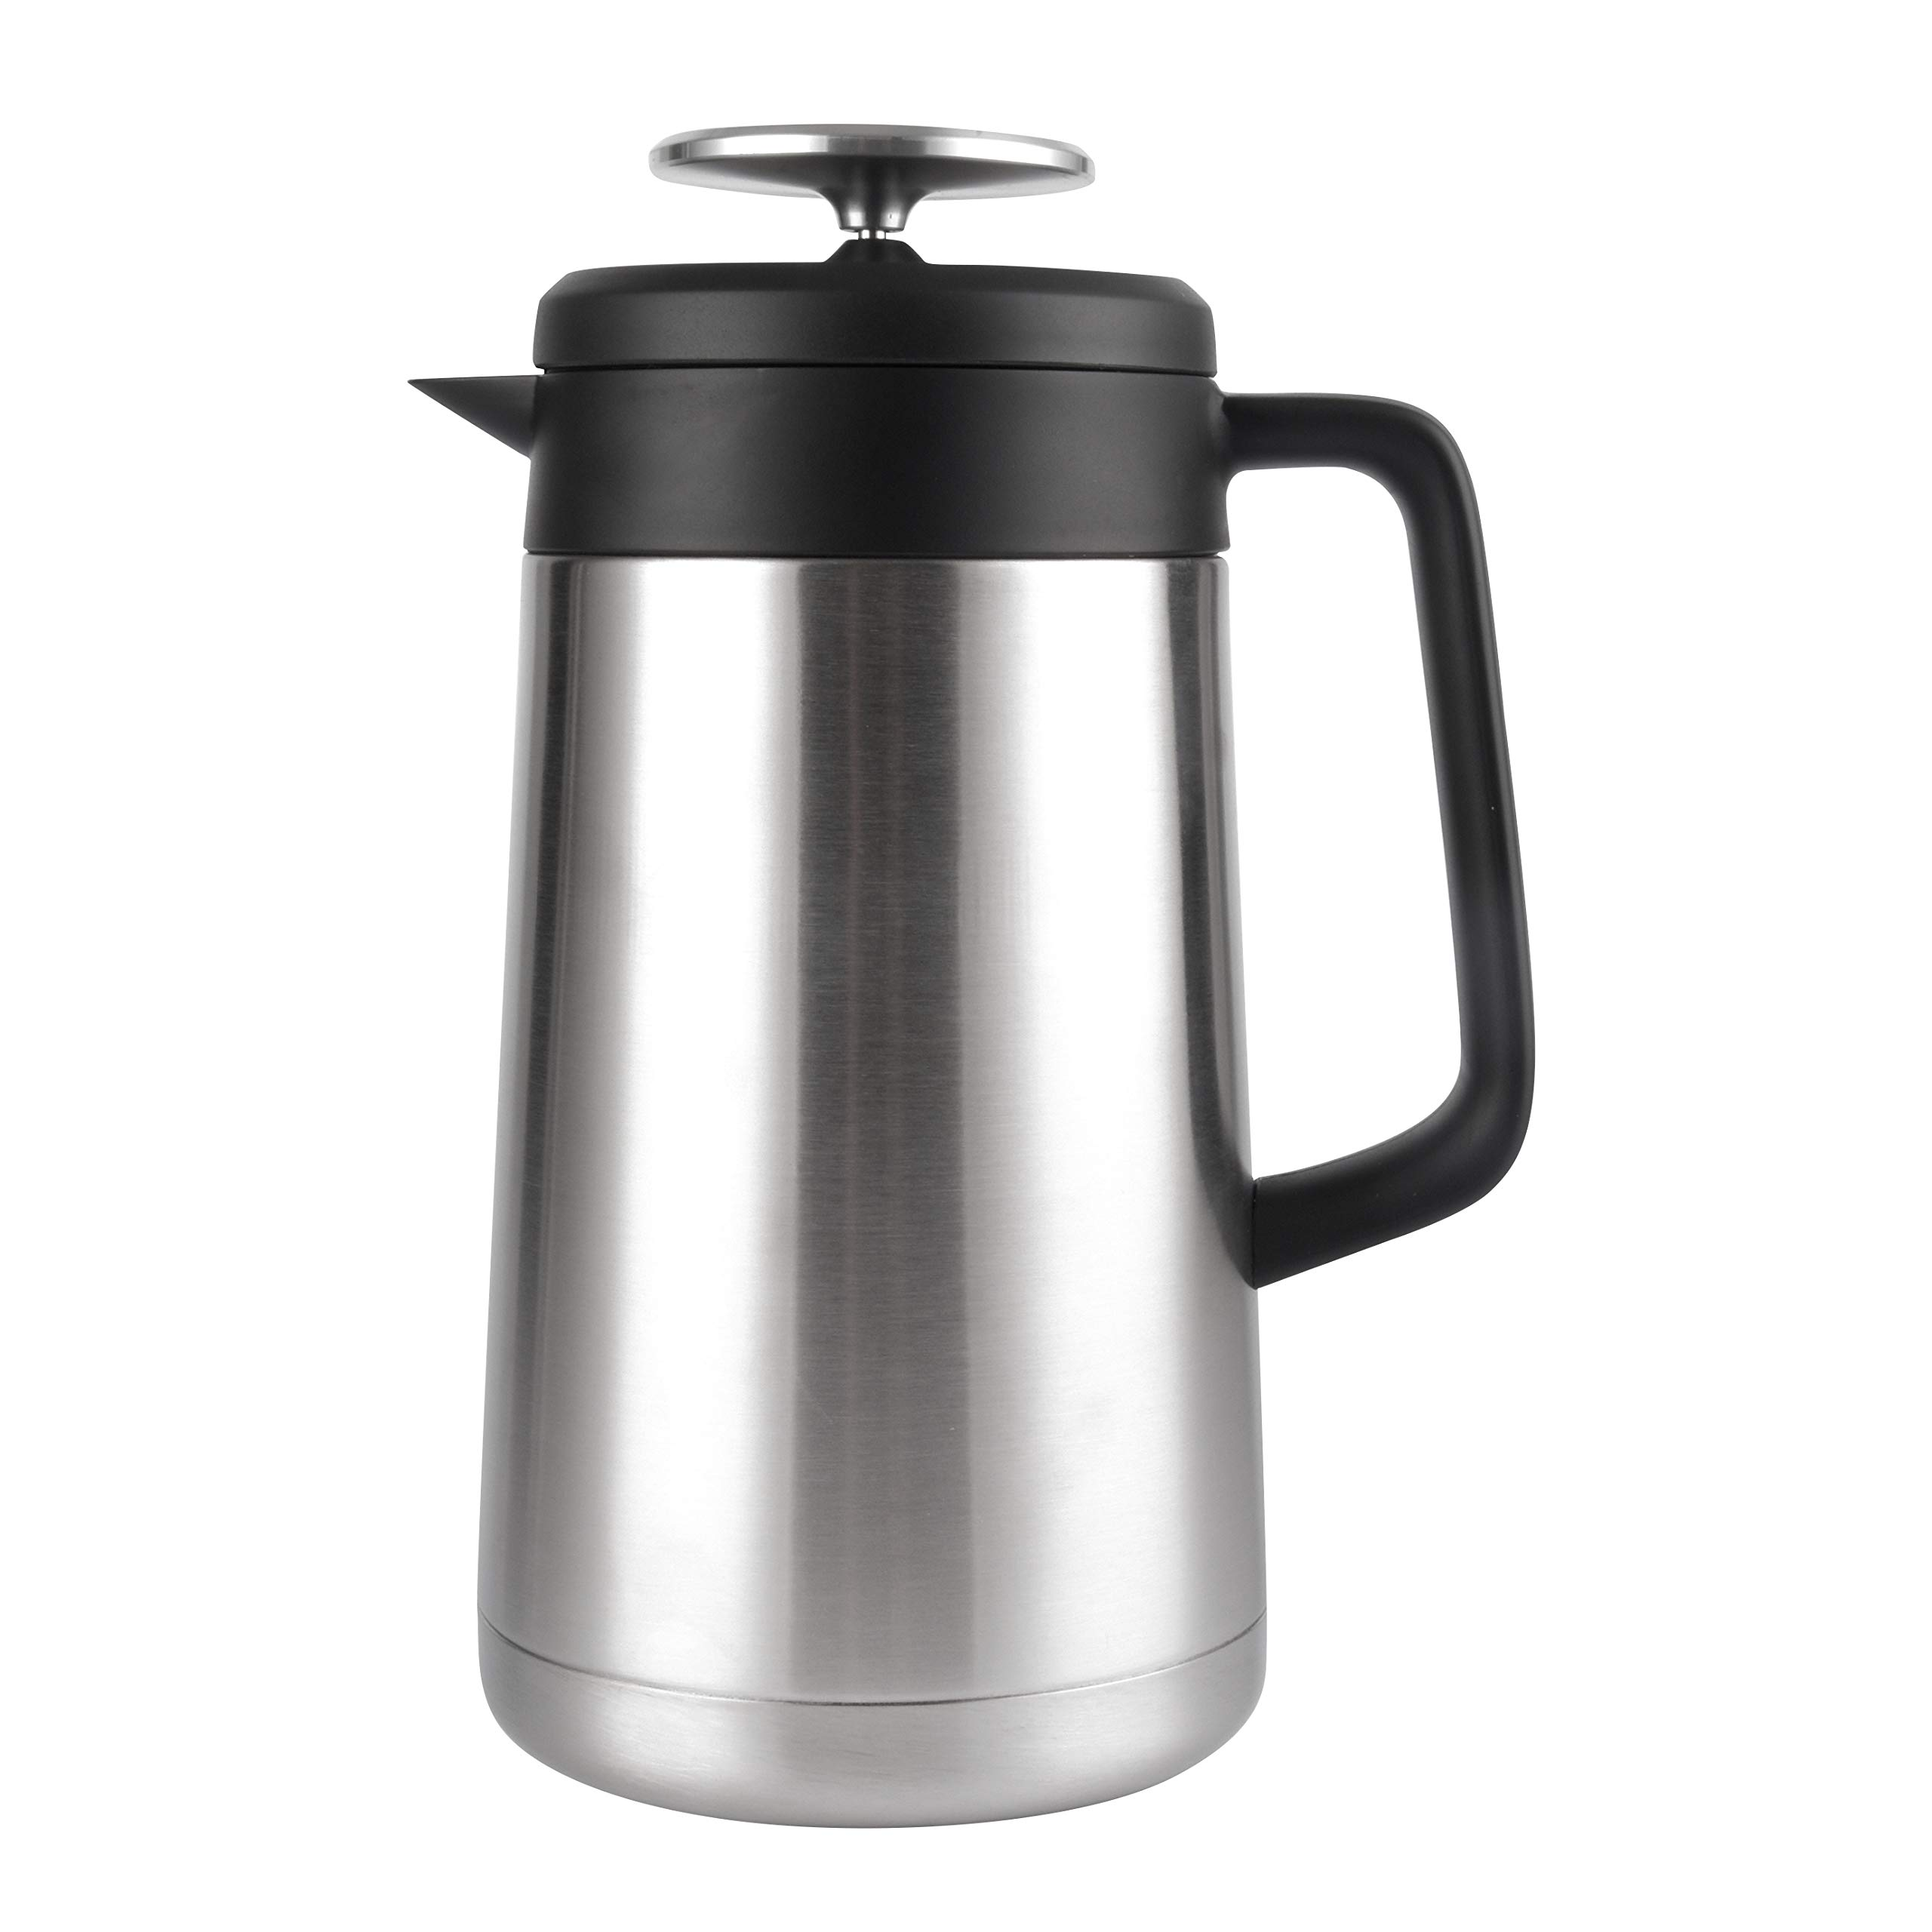 Stainless Steel French Press Coffee Maker (34 oz) - No More Wasted Premium Coffee! Maximum Heat Retention, Double Wall, Thermal Insulated. Large Coffee Press Pot - For Tea Lover's too - Cresimo by Cresimo